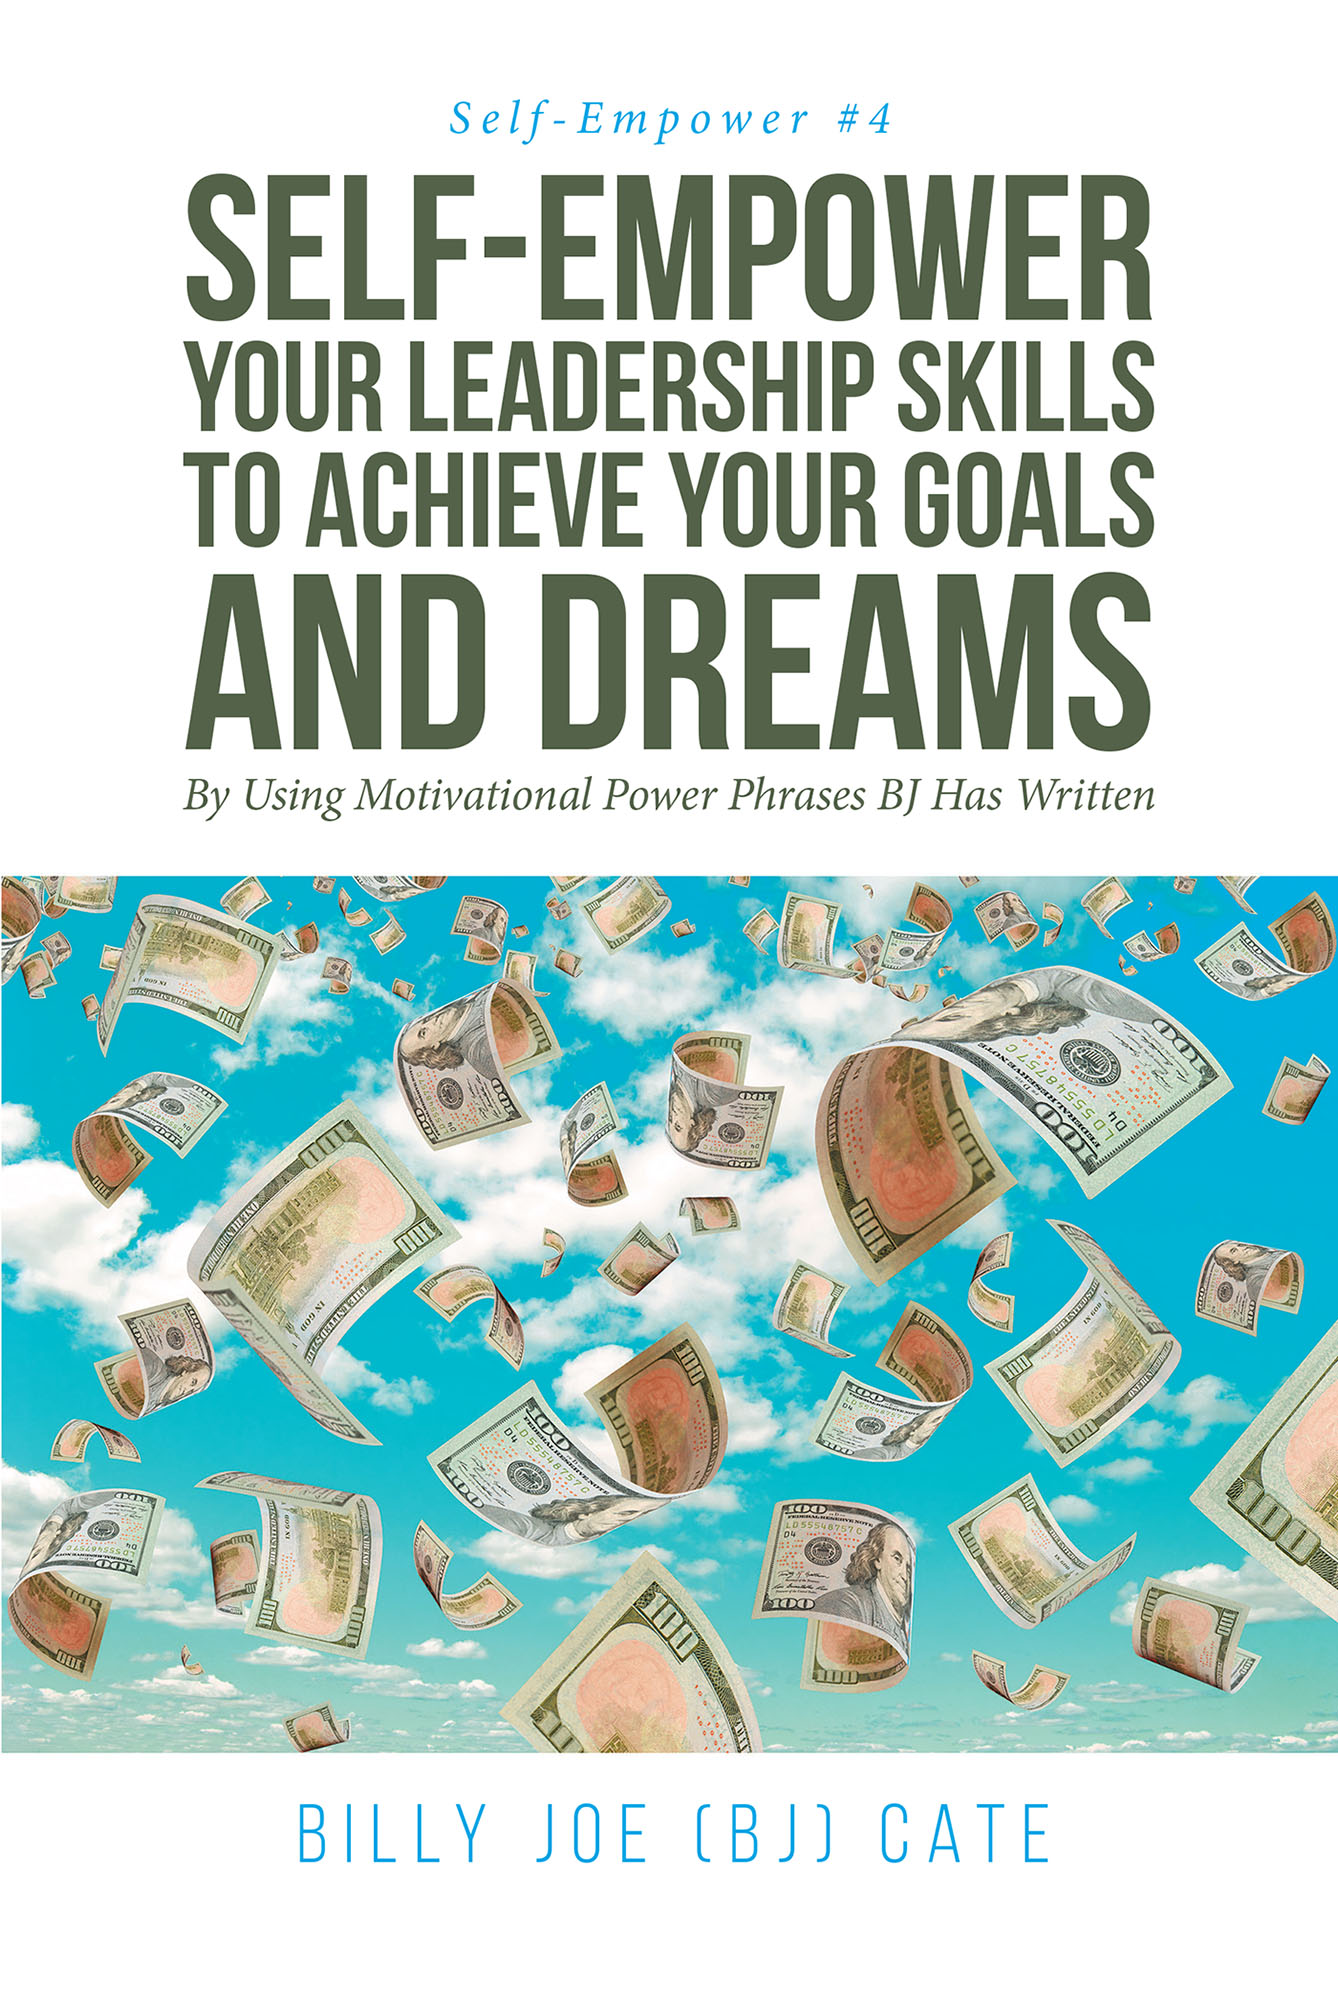 Billy Joe (BJ) Cate's New Book 'Self-Empower Your Leadership Skills